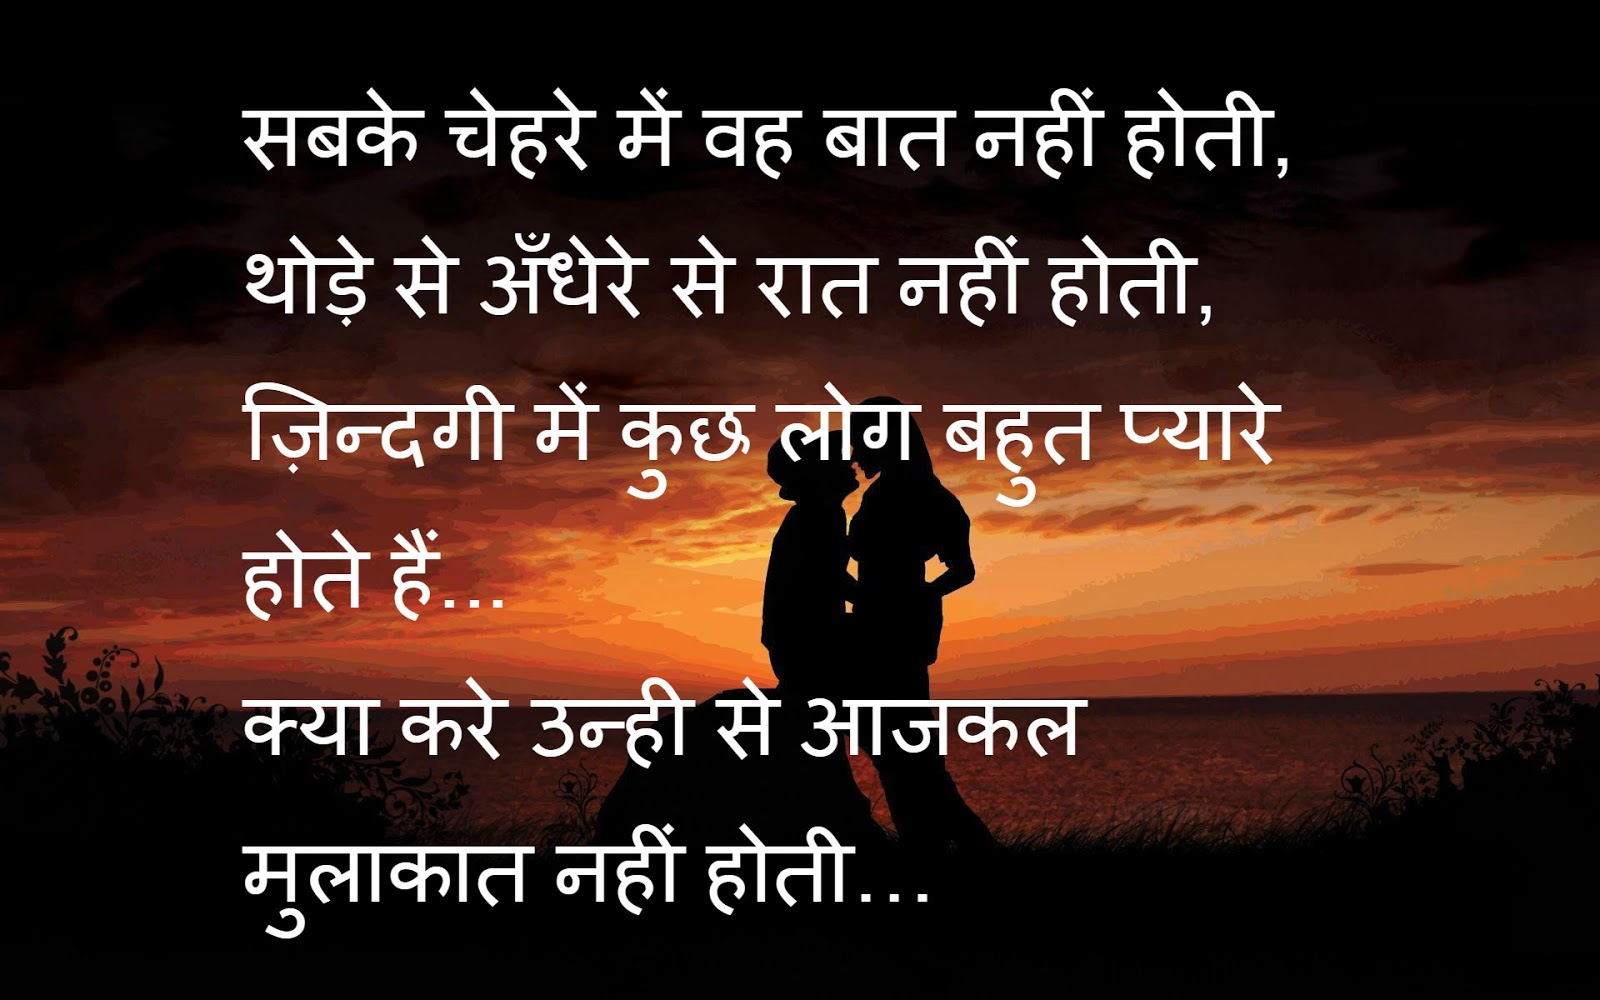 Good Morning Love Sayari Wallpaper : Shayari Urdu Images,urdu shayari with picture,urdu shayari wallpaper,love shayari urdu,sad love ...